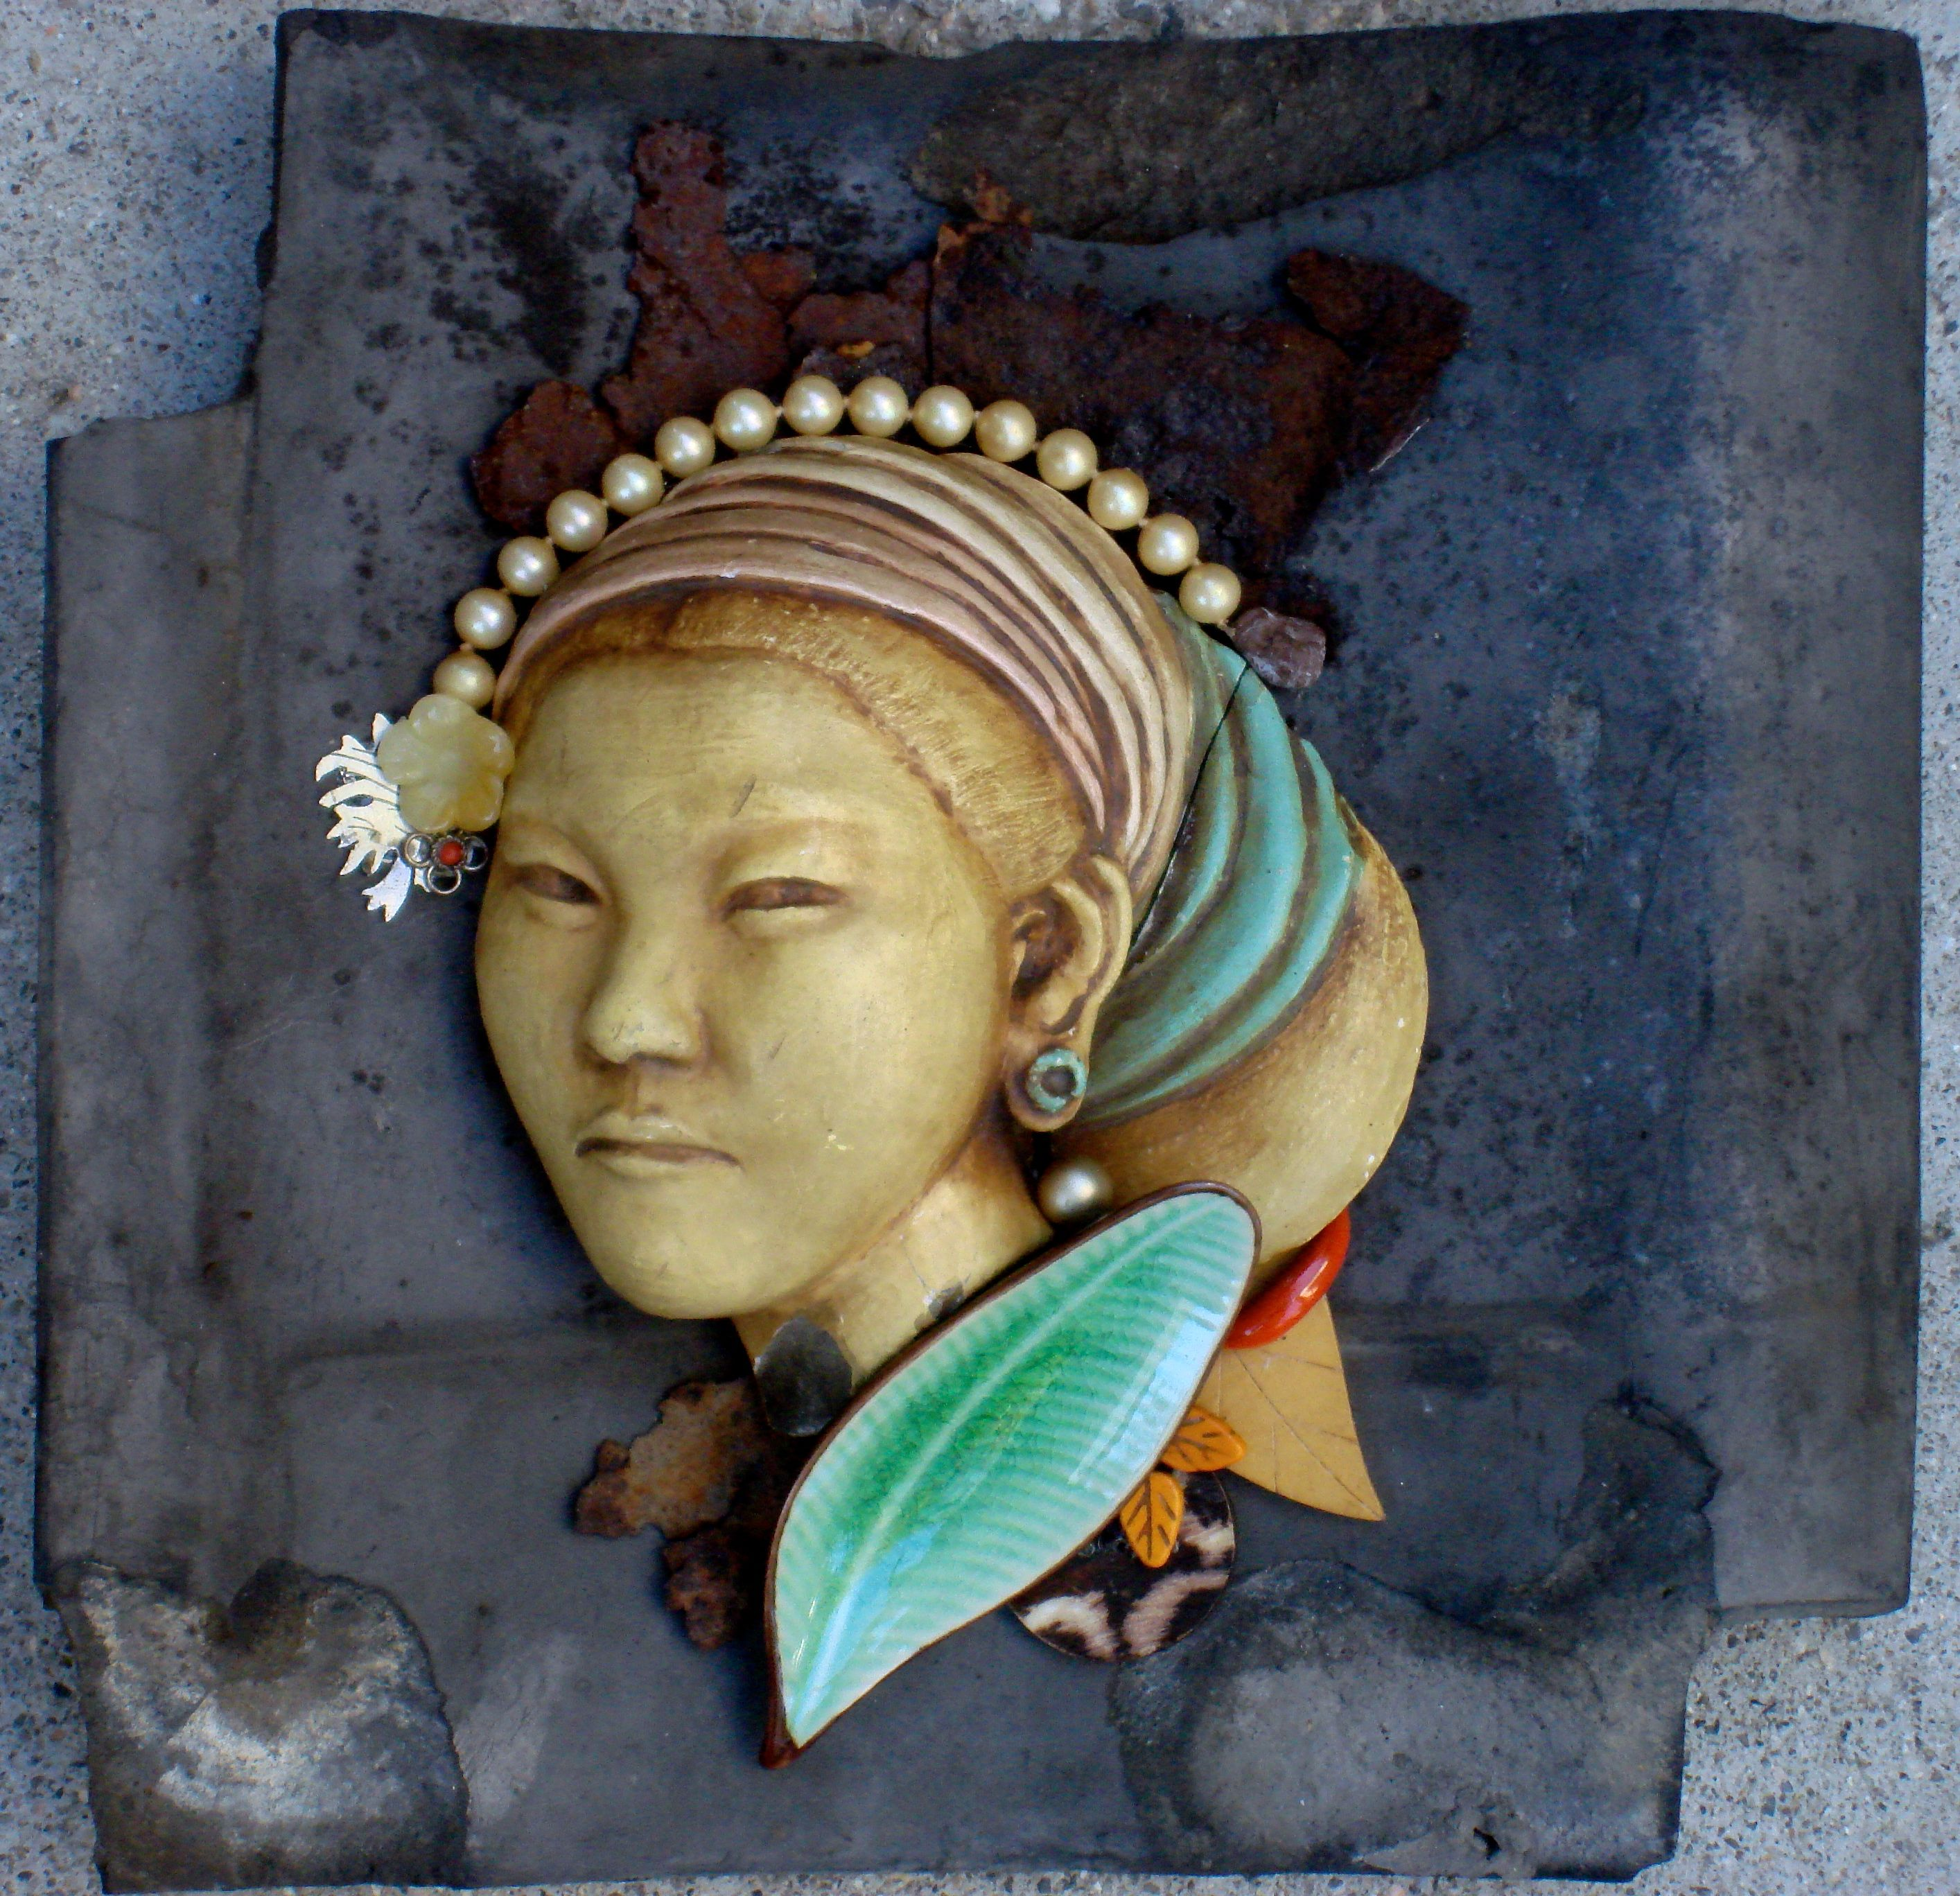 Best Mixed Media Assemblage On Old Japanese Roof Tile By Carolyn Machado Machadoart Net With Images 400 x 300